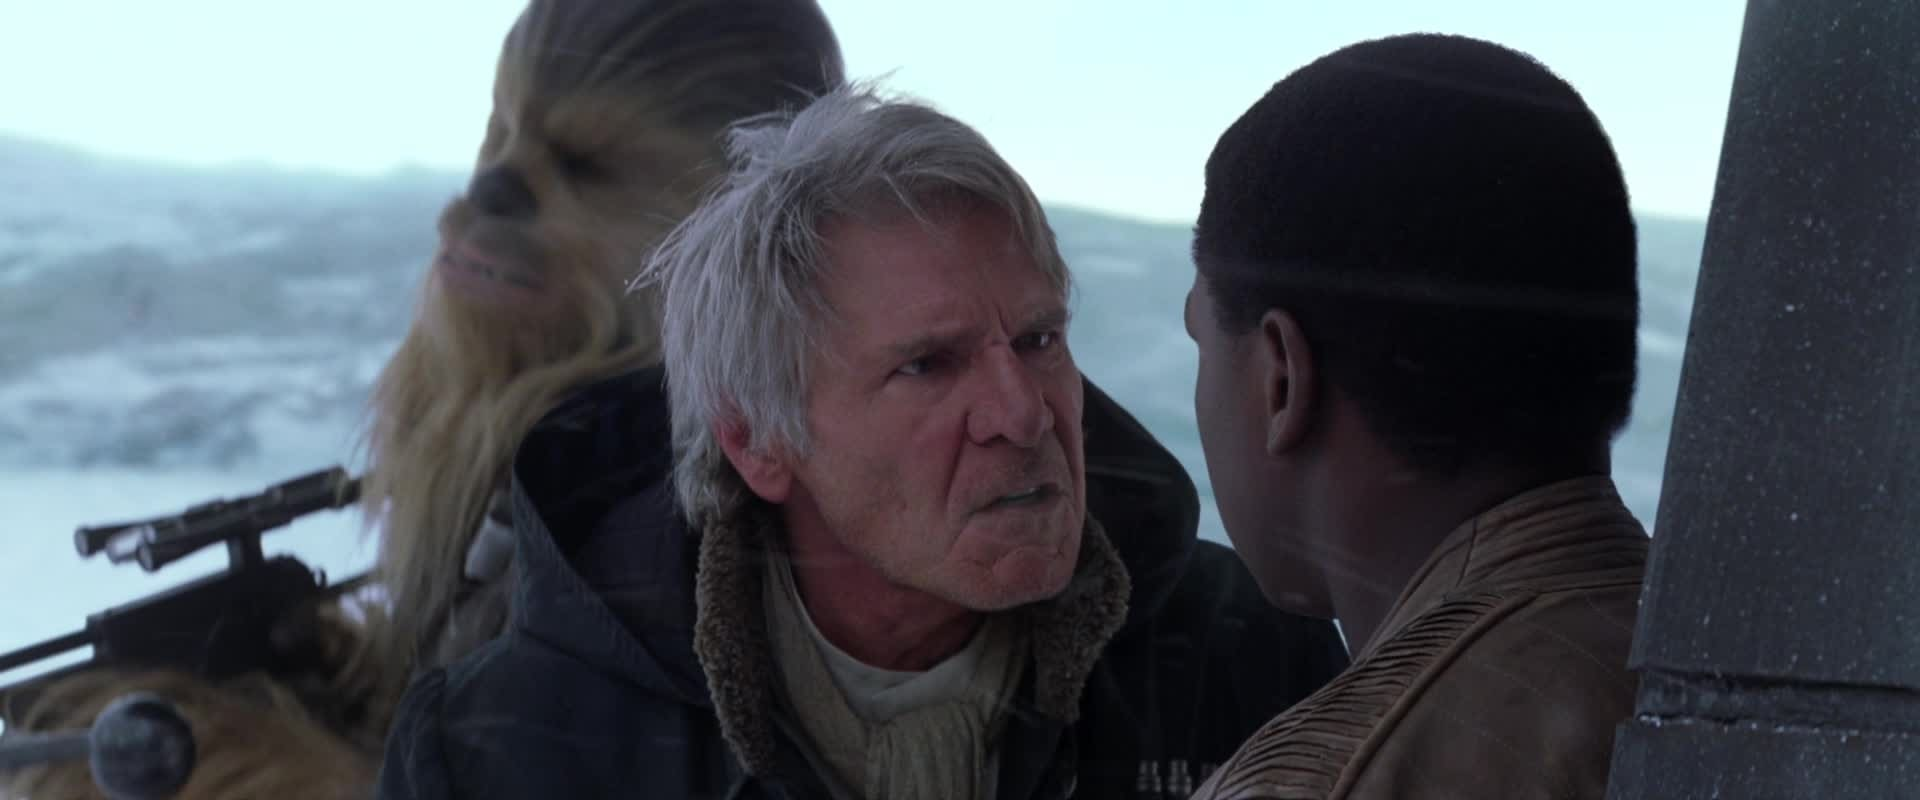 Star Wars: The Force Awakens - That's Not How The Force Works